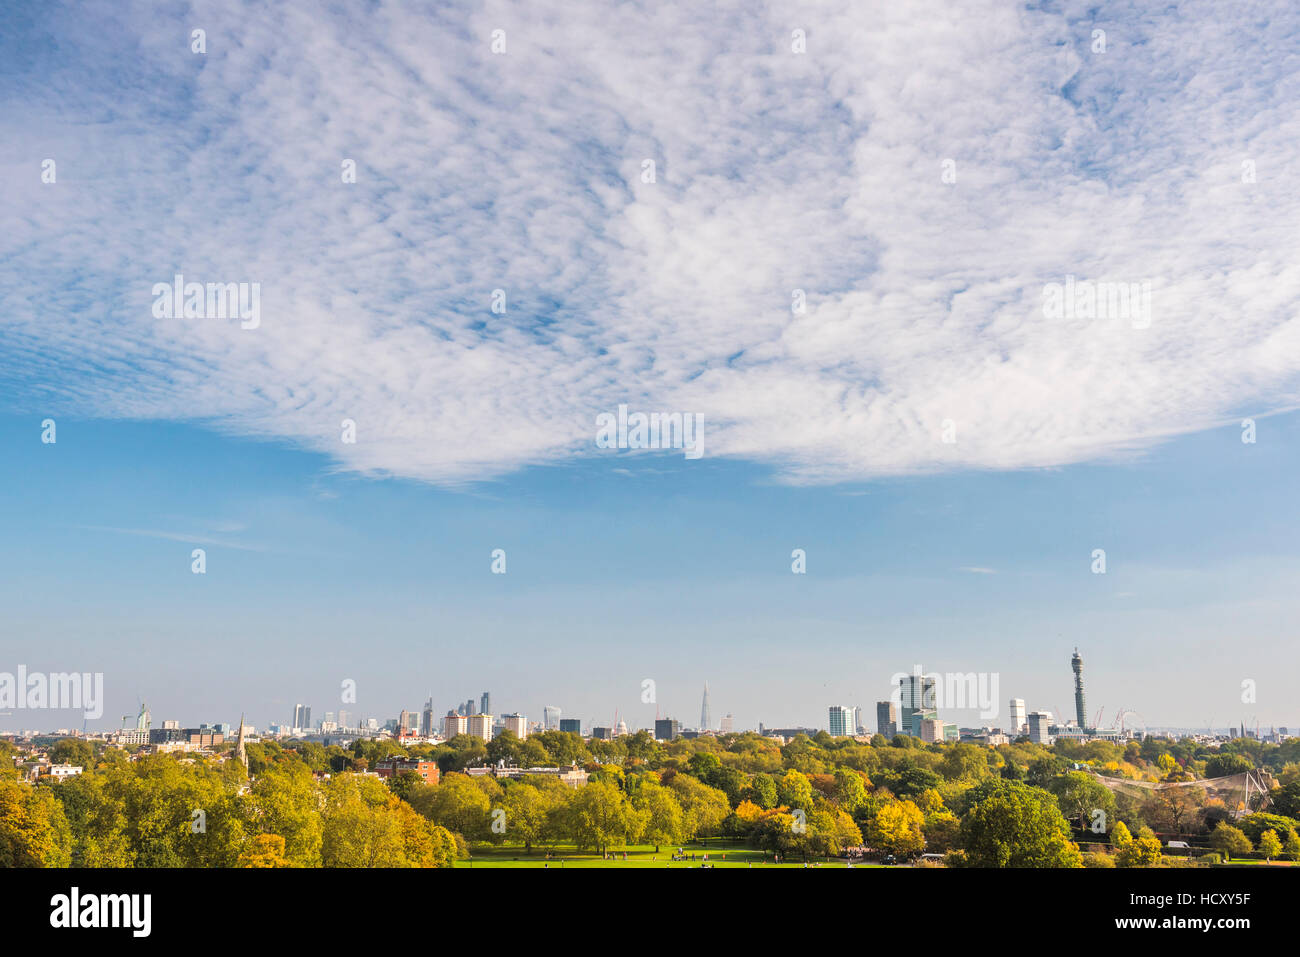 City skyline in autumn seen from Primrose Hill, Chalk Farm, London Borough of Camden, London, UK - Stock Image